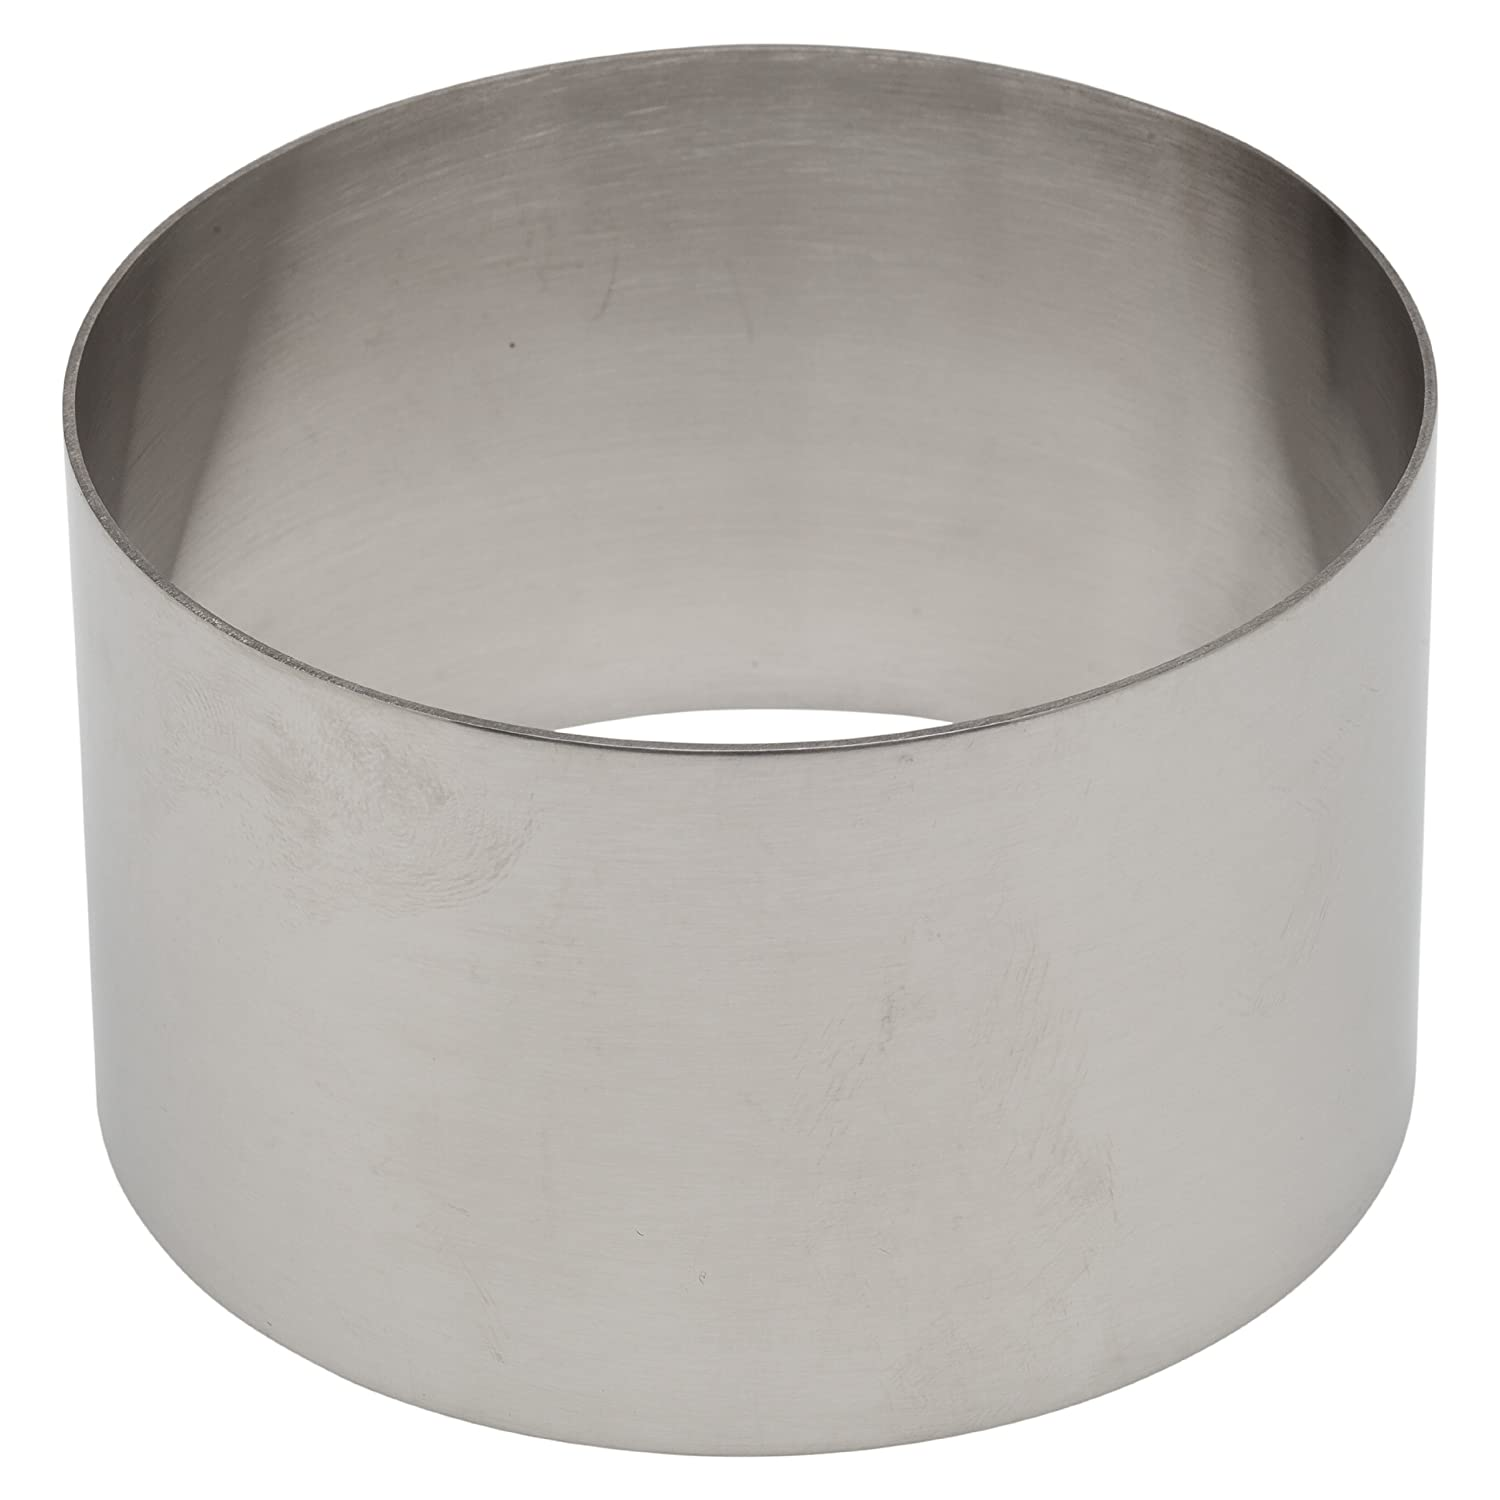 Ateco 4953 Stainless Steel Ring Mold, 3.5 by 2.1-Inches High, Compatible with 4952 Food Molding Set